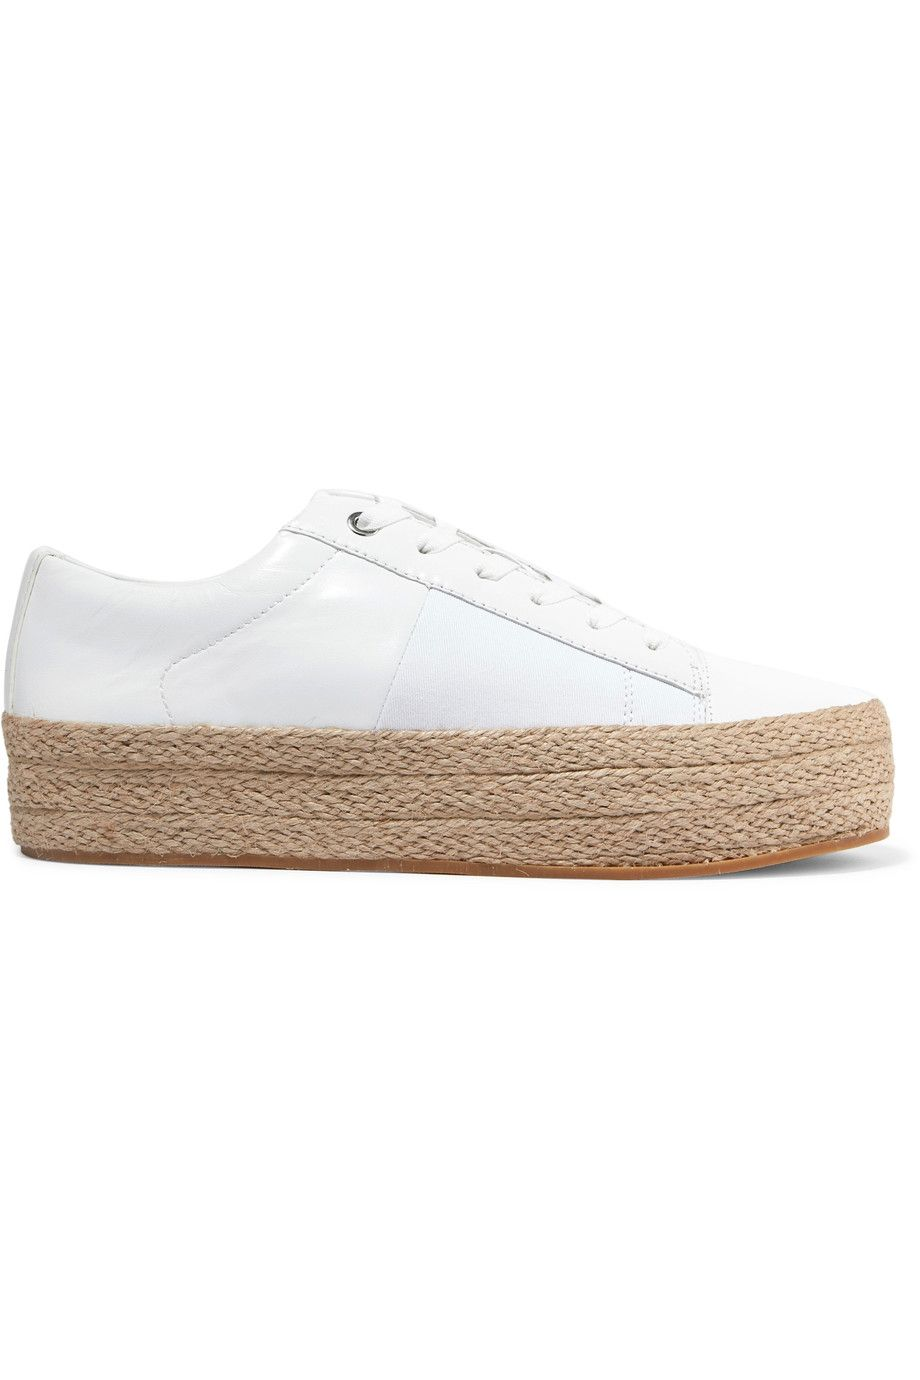 3c97523fdae DKNY Bari leather and canvas platform sneakers.  dkny  shoes  sneakers